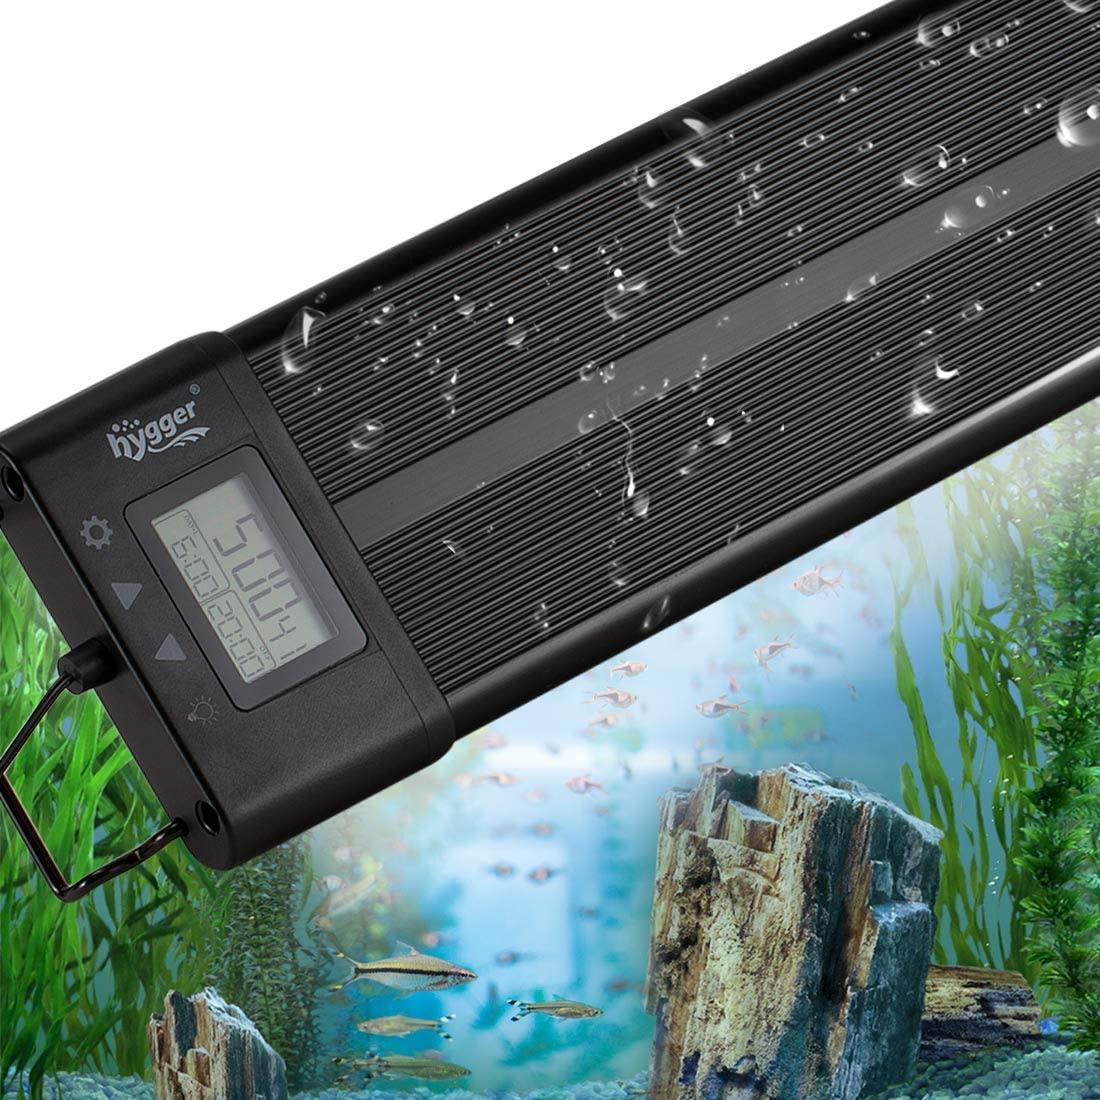 hygger Aquarium Programmable LED Light, Full Spectrum Plant Fish Tank Light Extendable Brackets with LCD Setting Display, IP68 Waterproof, 7 Colors, 4 Modes for Novices Advanced Players